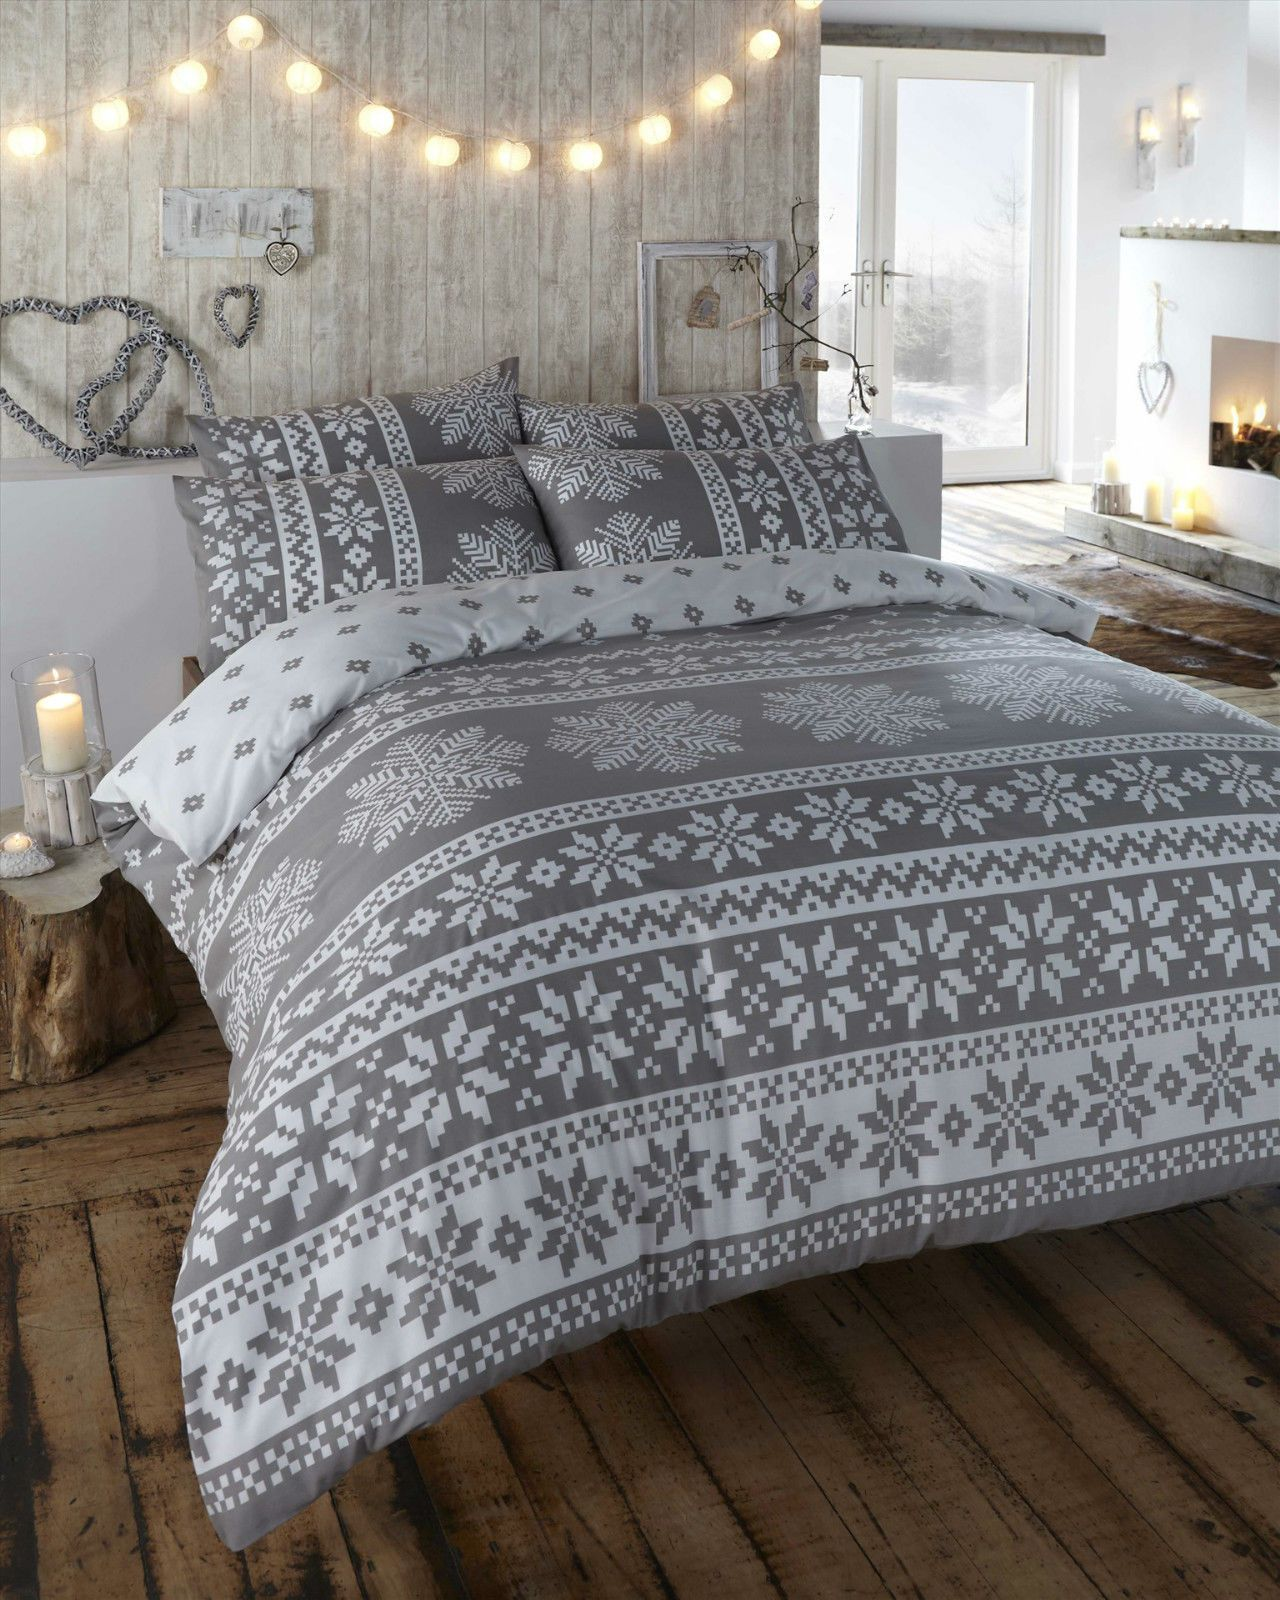 Retro Nordic Alpine Snowflake Duvet Quilt Cover Bedding Set